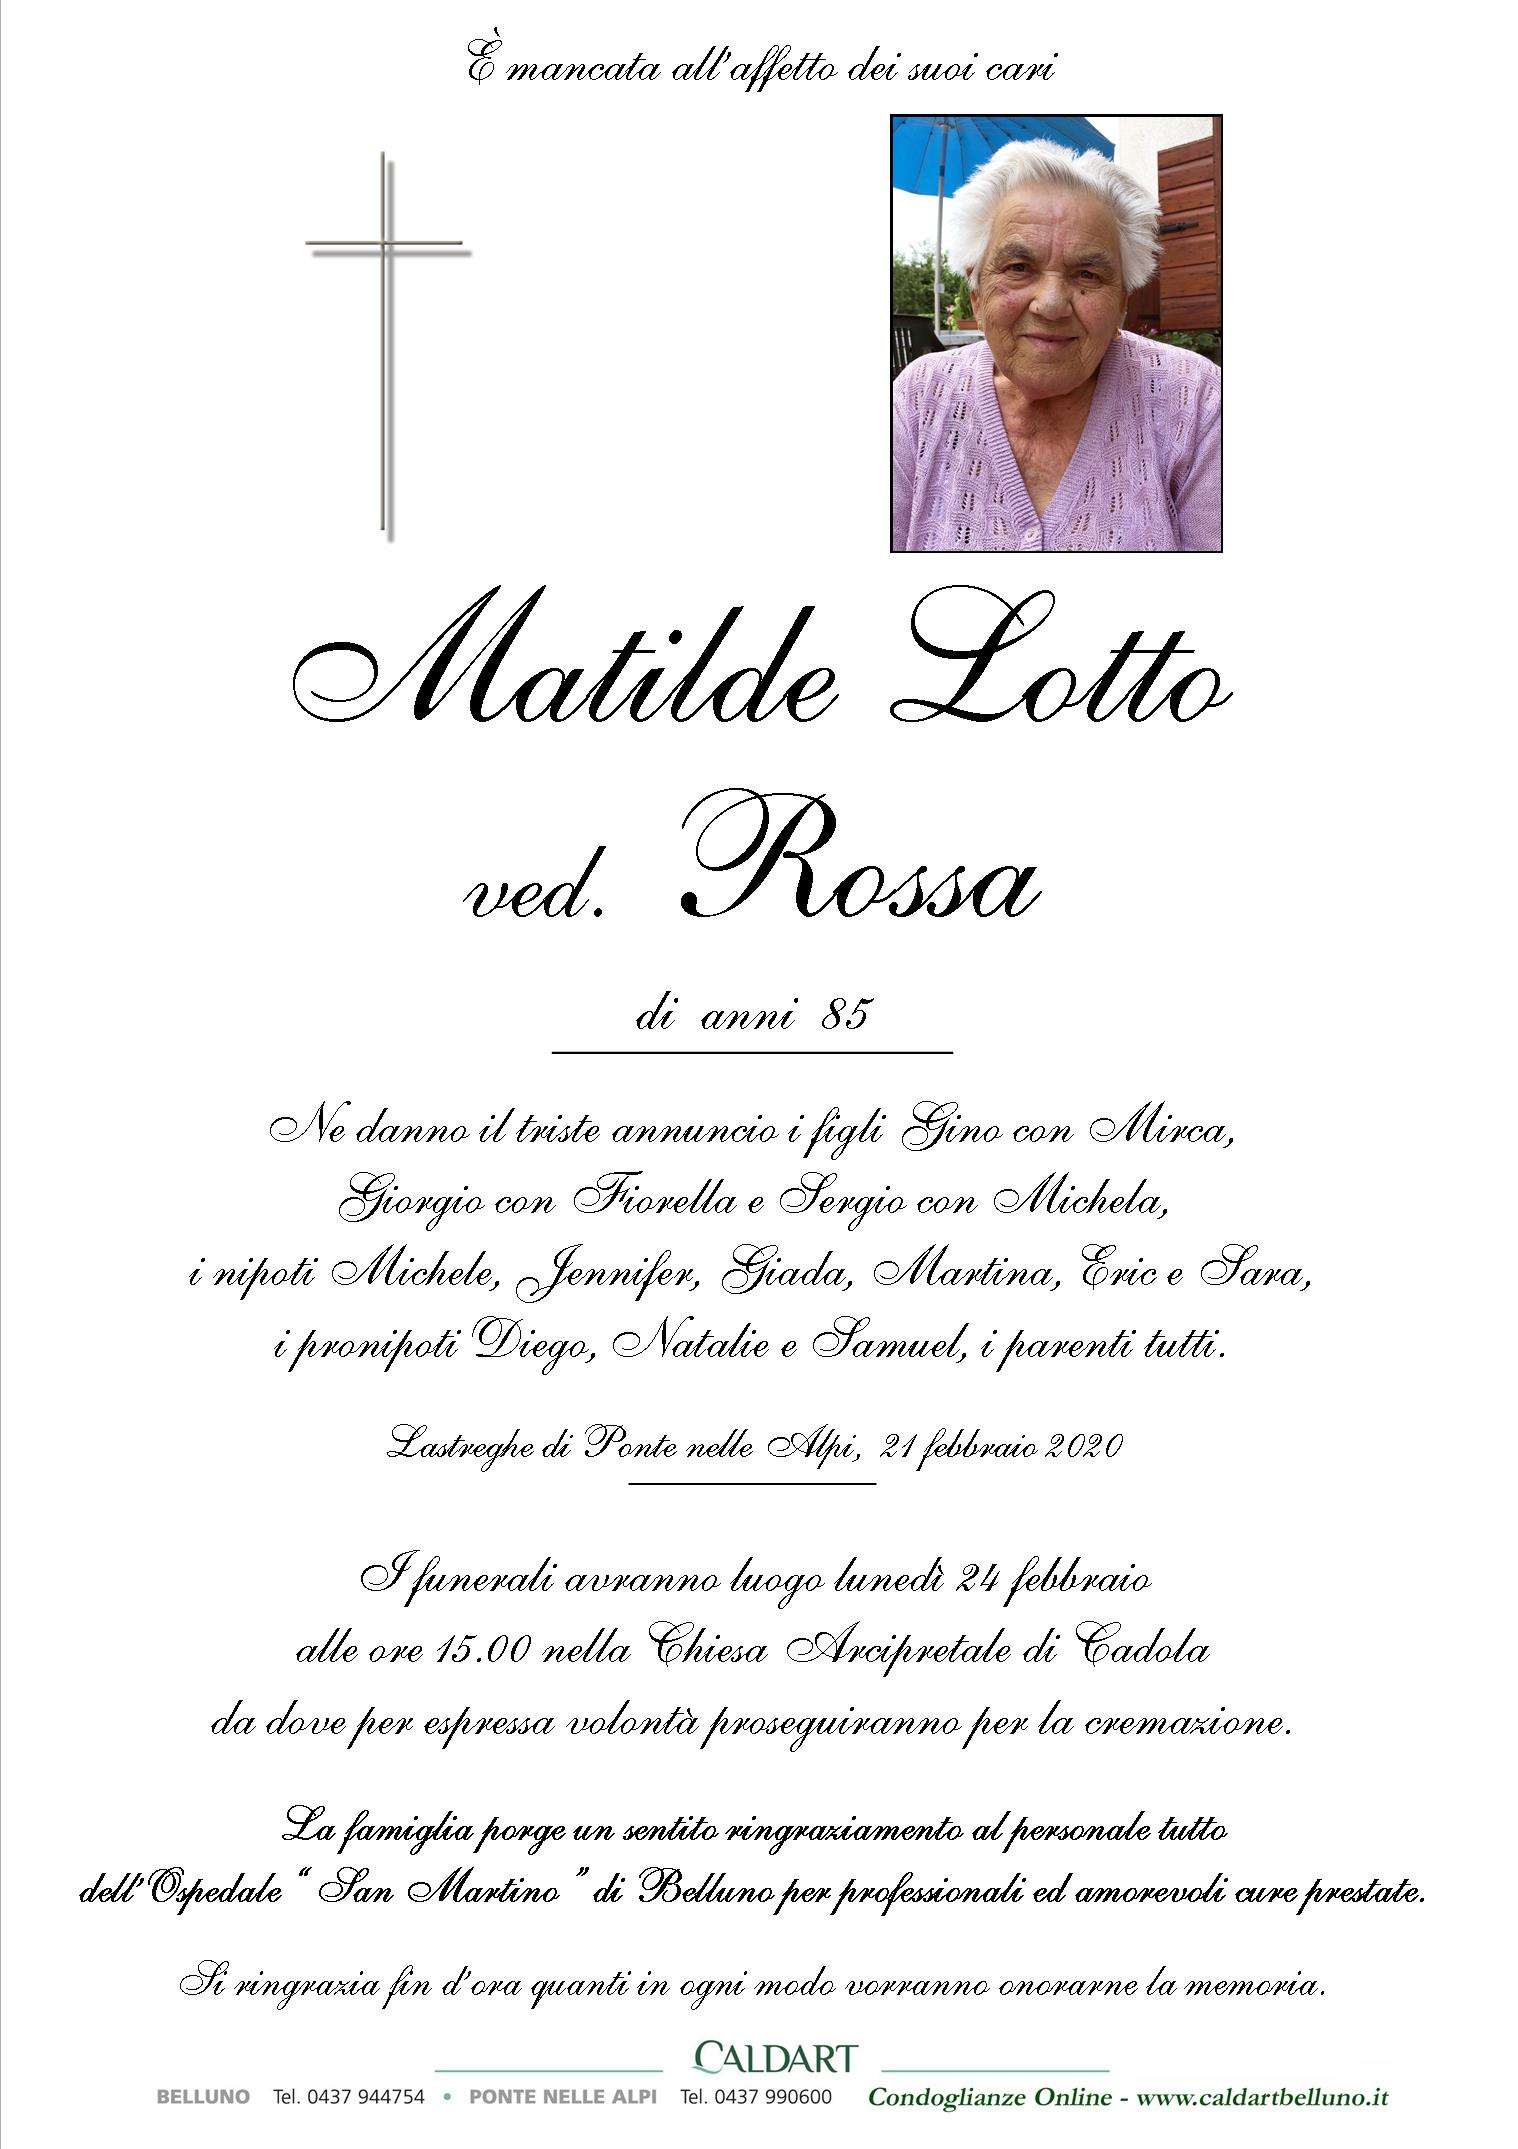 Lotto Matilde